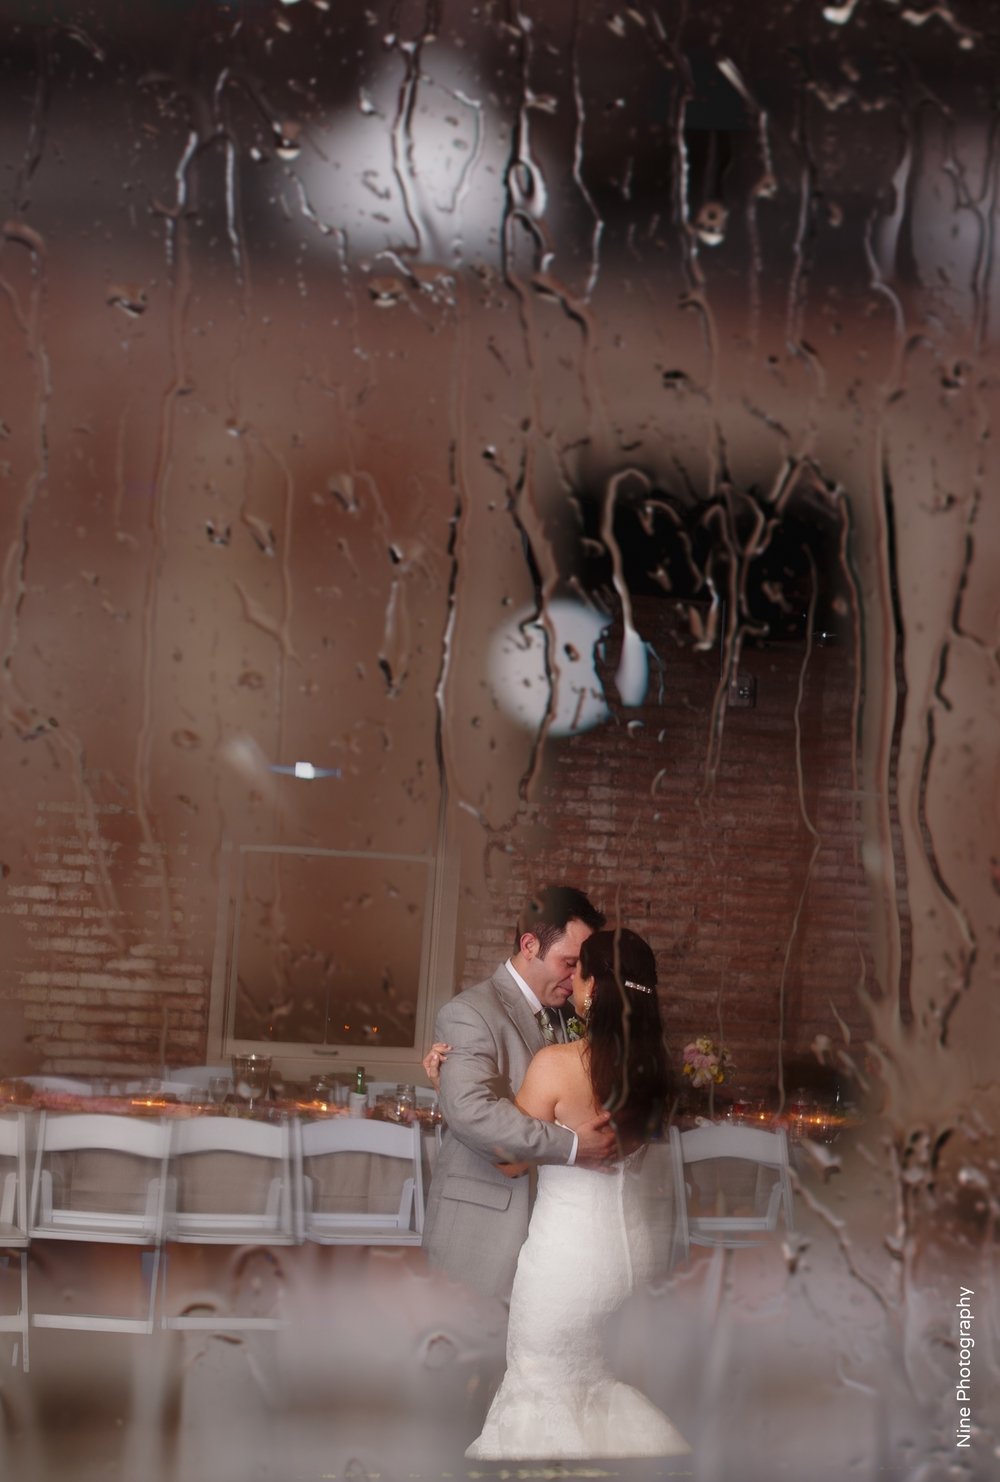 Bride & Groom Private Last Dance Raining Outside